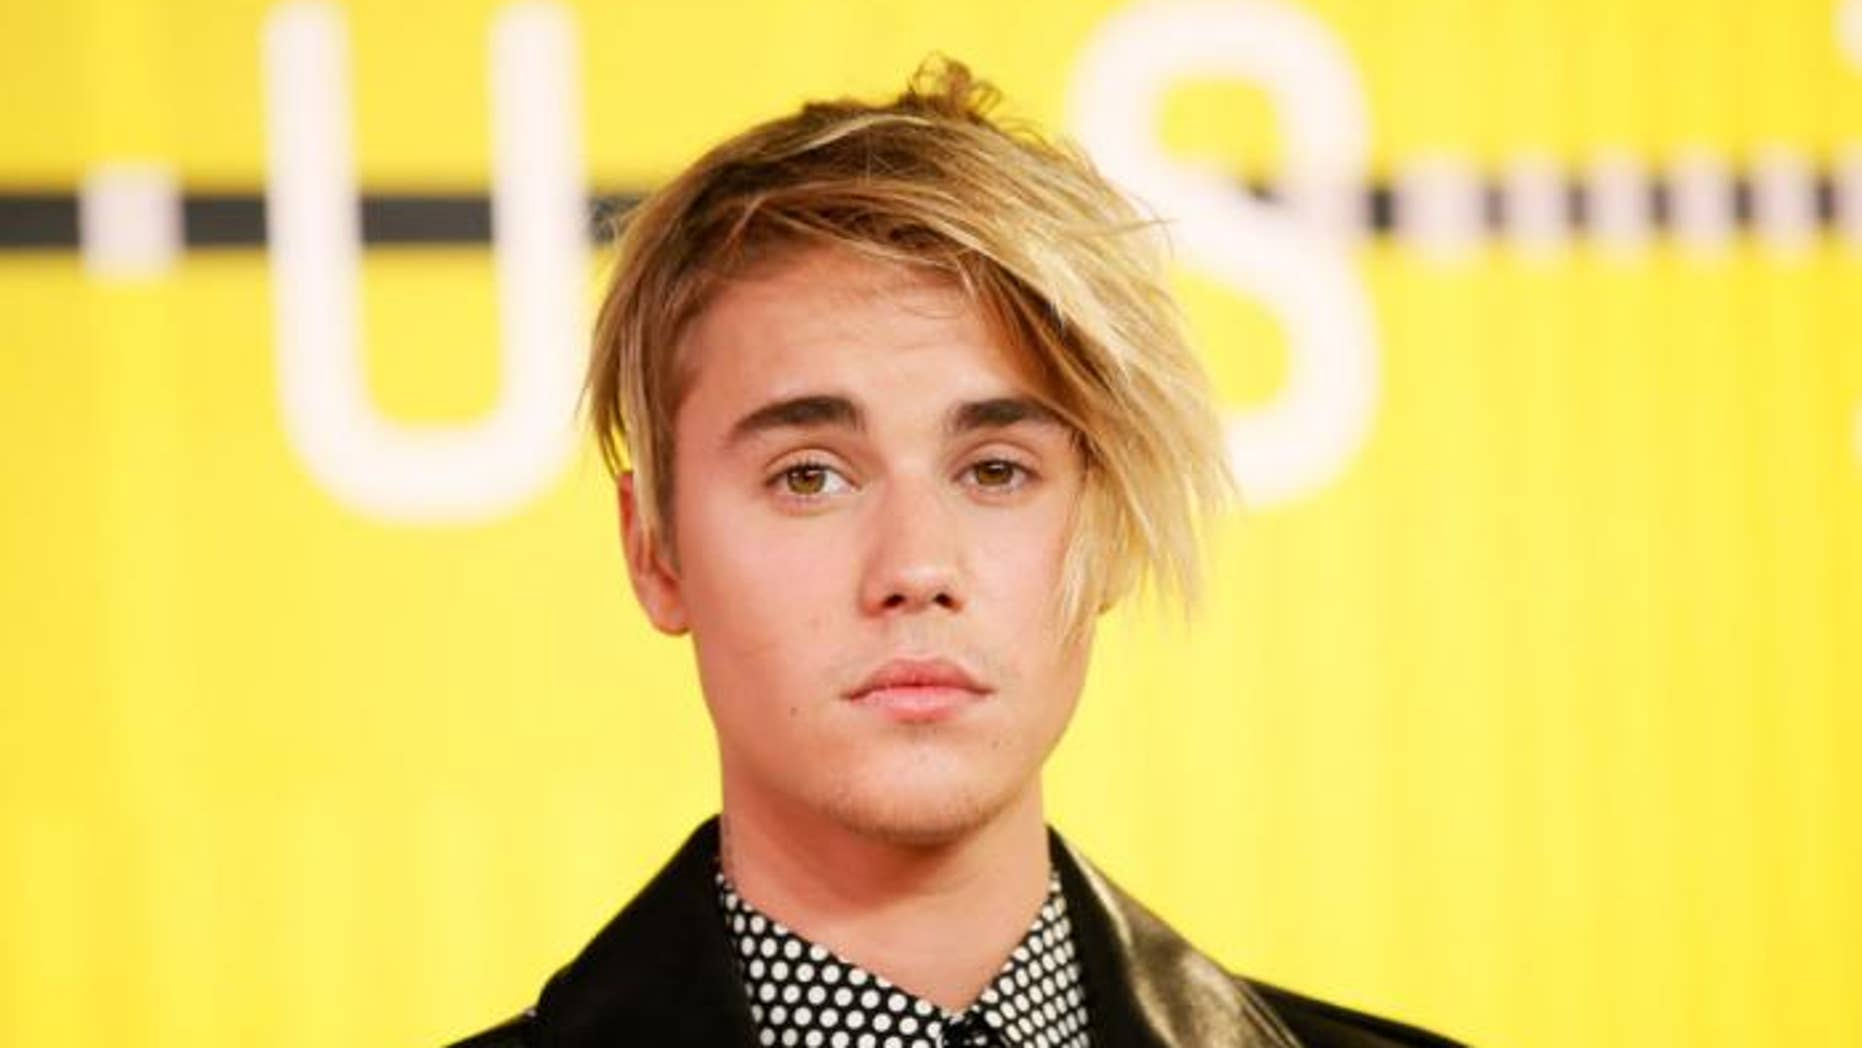 Justin Bieber settles a long-running lawsuit filed by ex-neighbor whose house he egged.